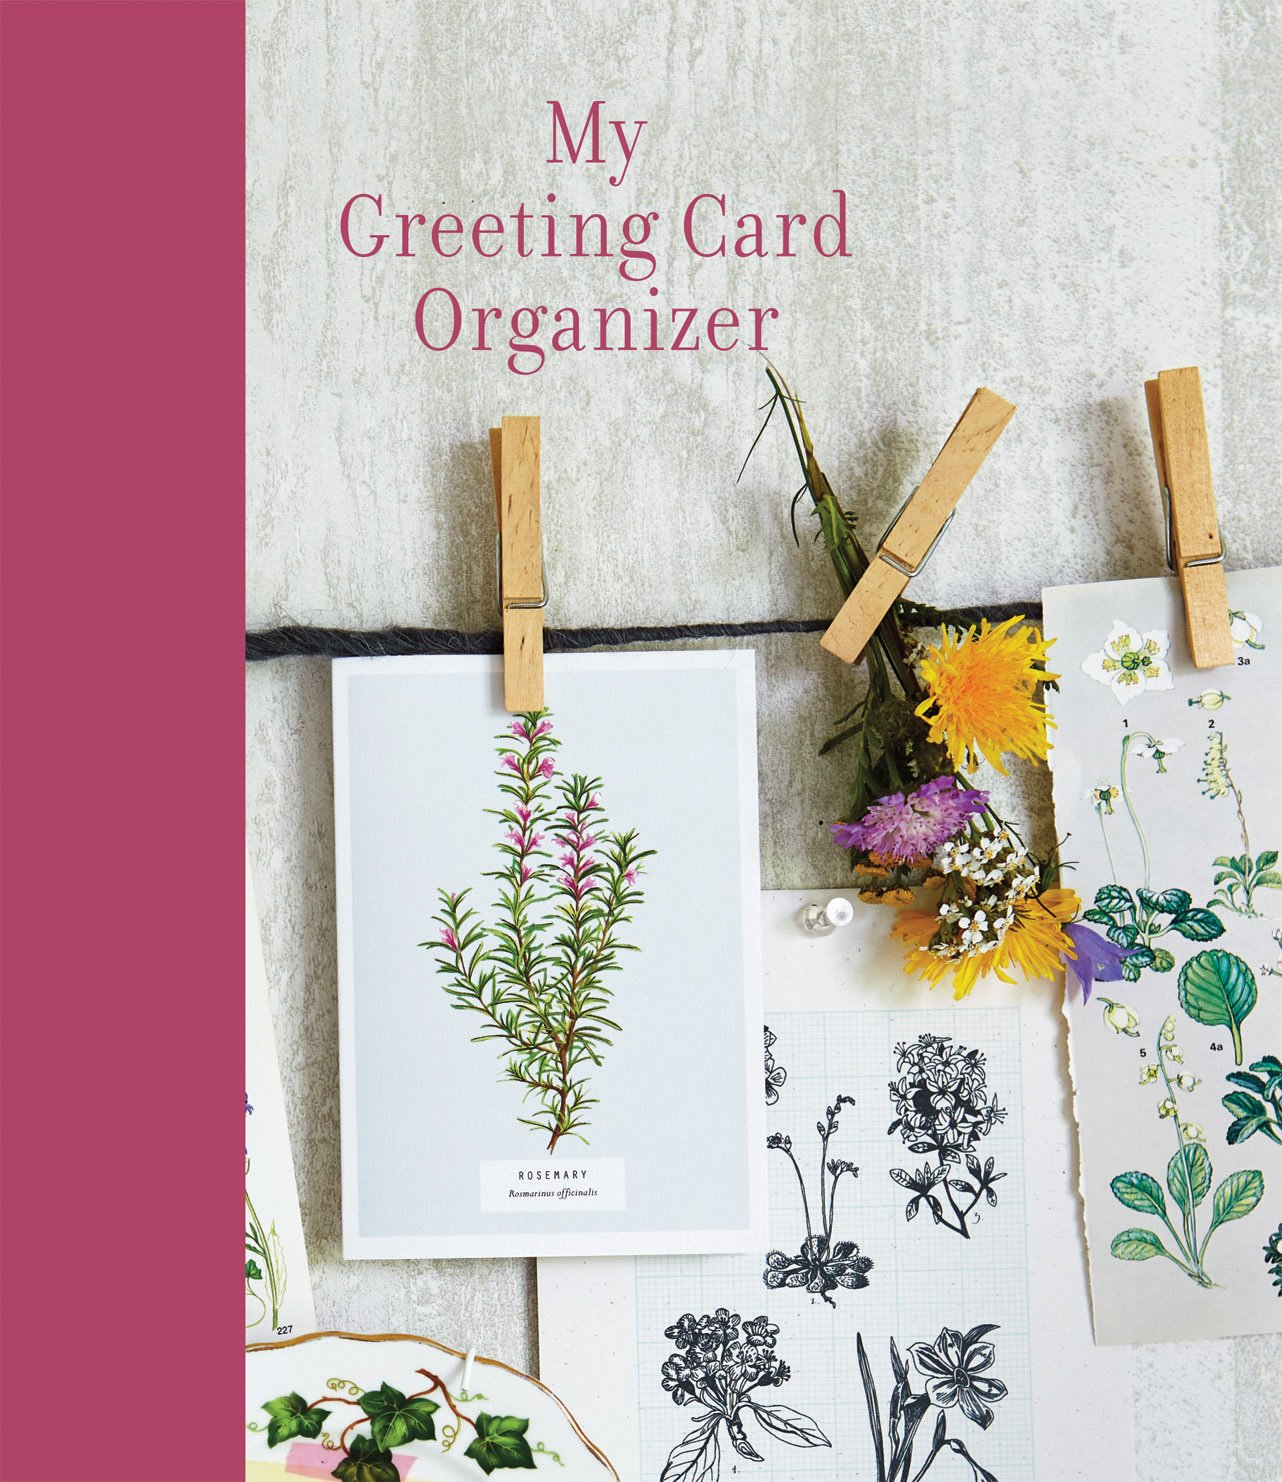 Greeting card organiser amazon electronics my greeting card organizer organizers kristyandbryce Image collections